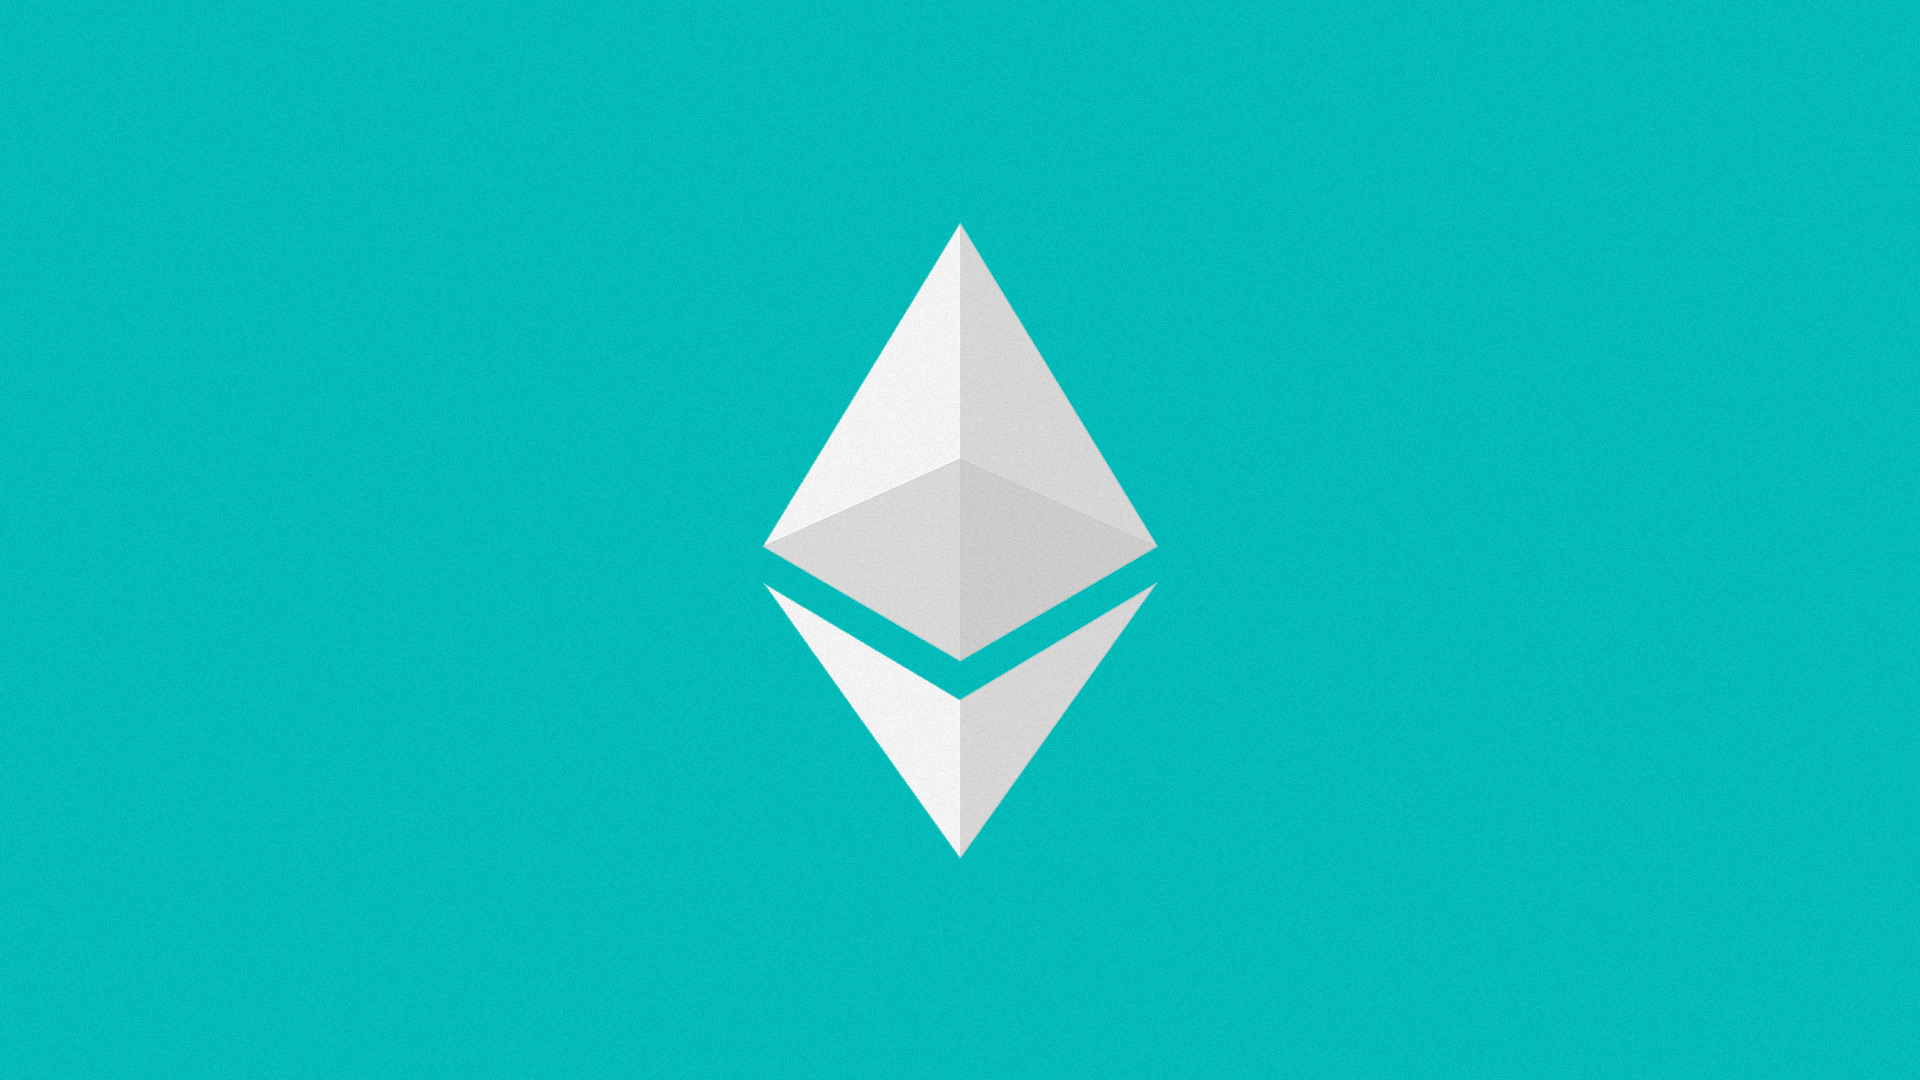 December was a record volume month for Ethereum options